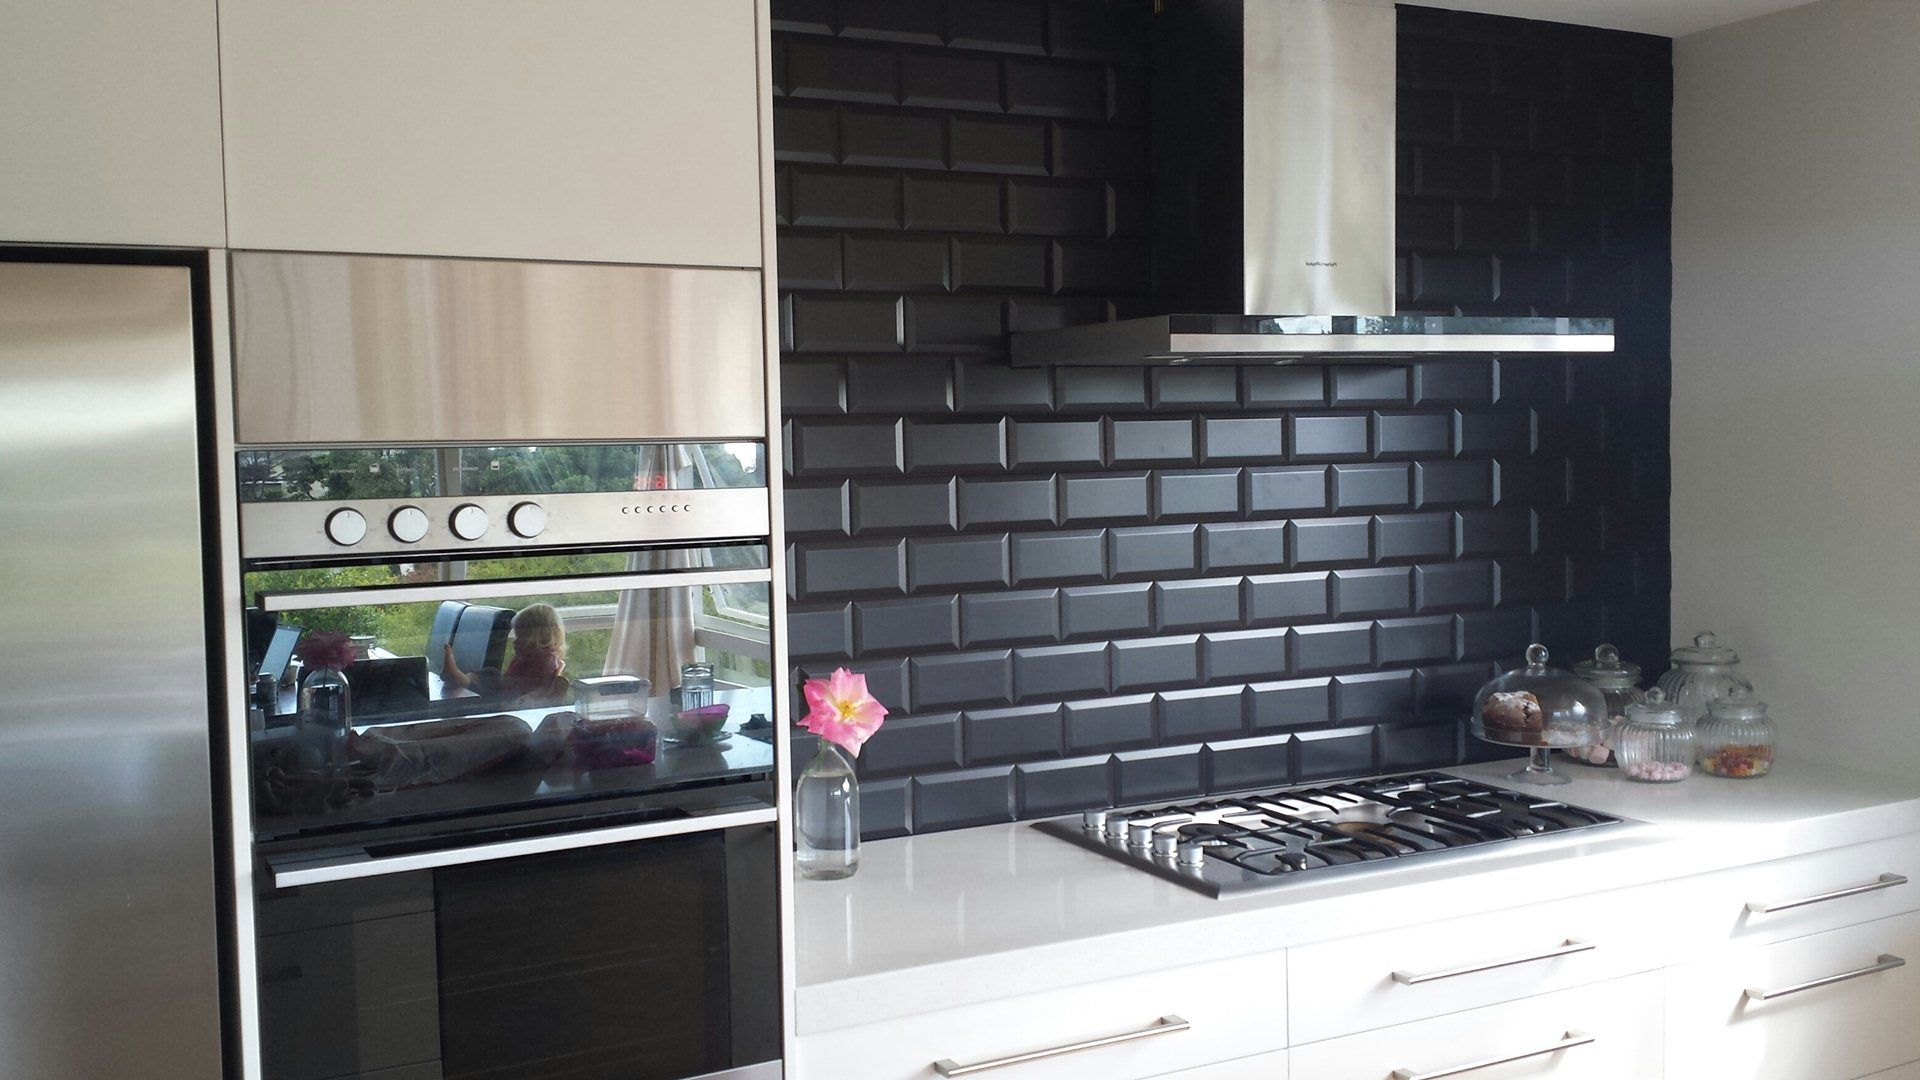 black kitchen wall tiles image of black subway tile kitchen backsplash home 4726